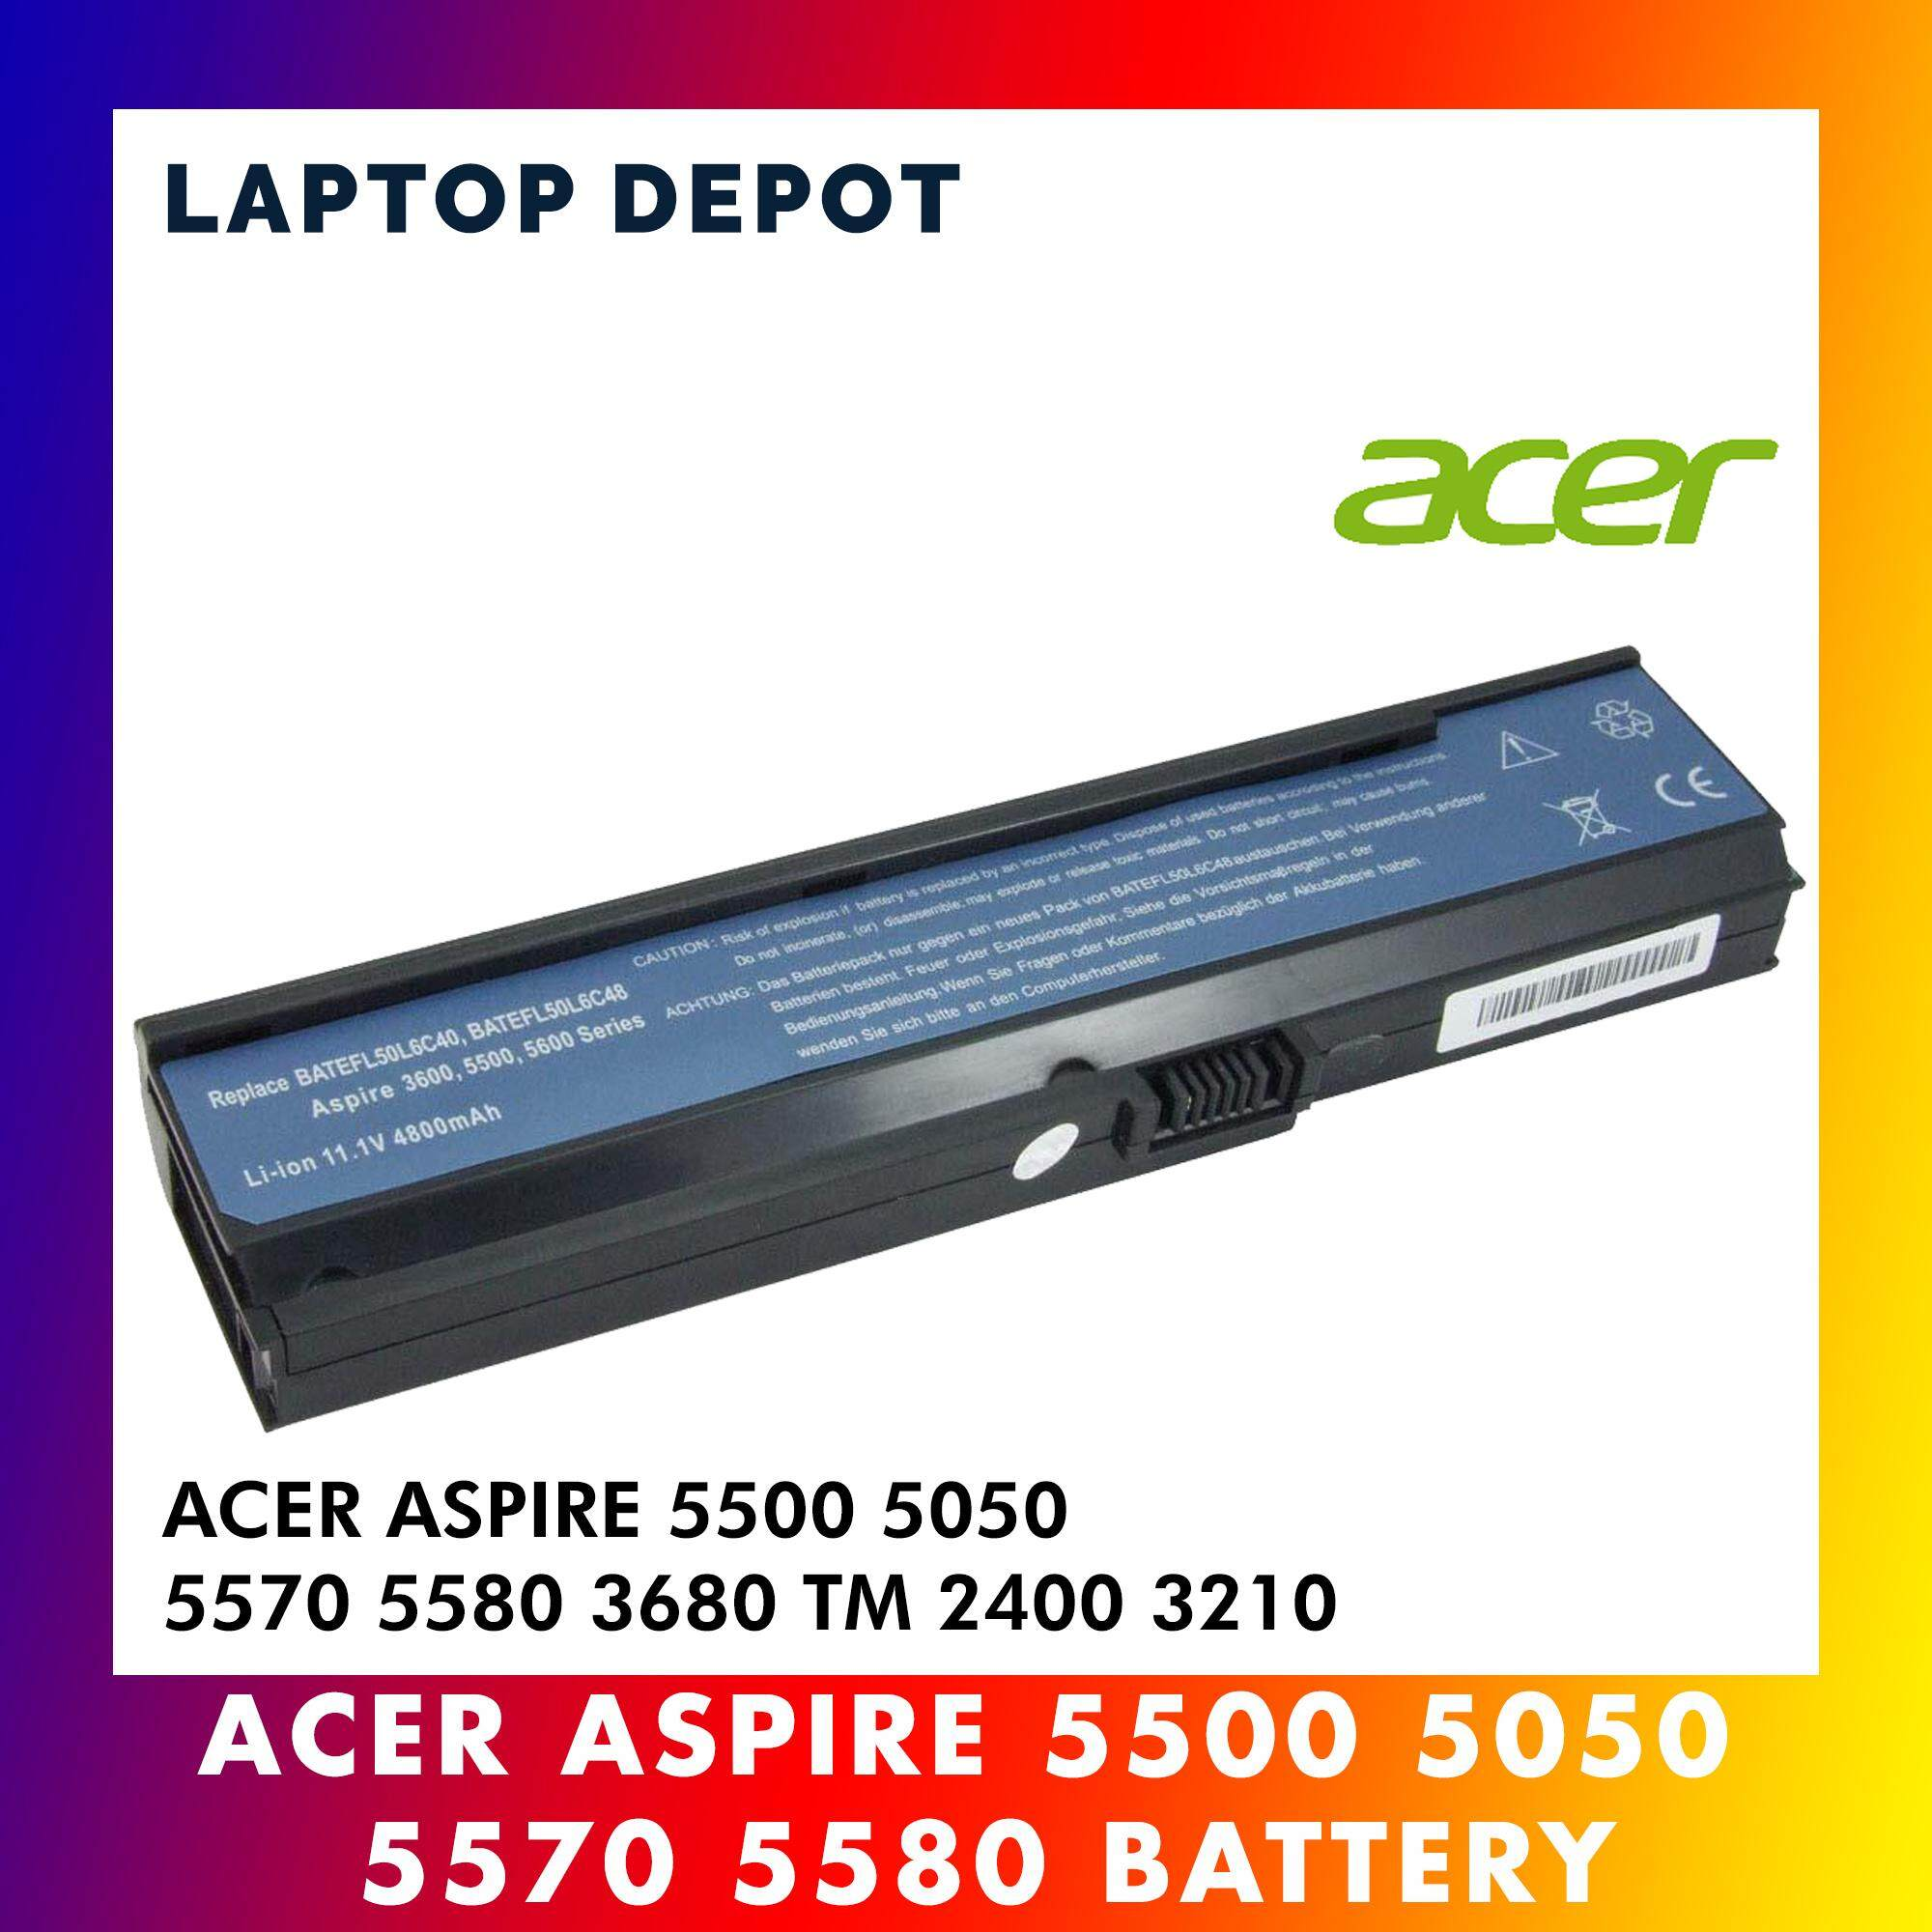 Acer Aspire 3680 5050 5500 5570 5580 Travelmate 2400 3210 3260 Laptop Battery Malaysia